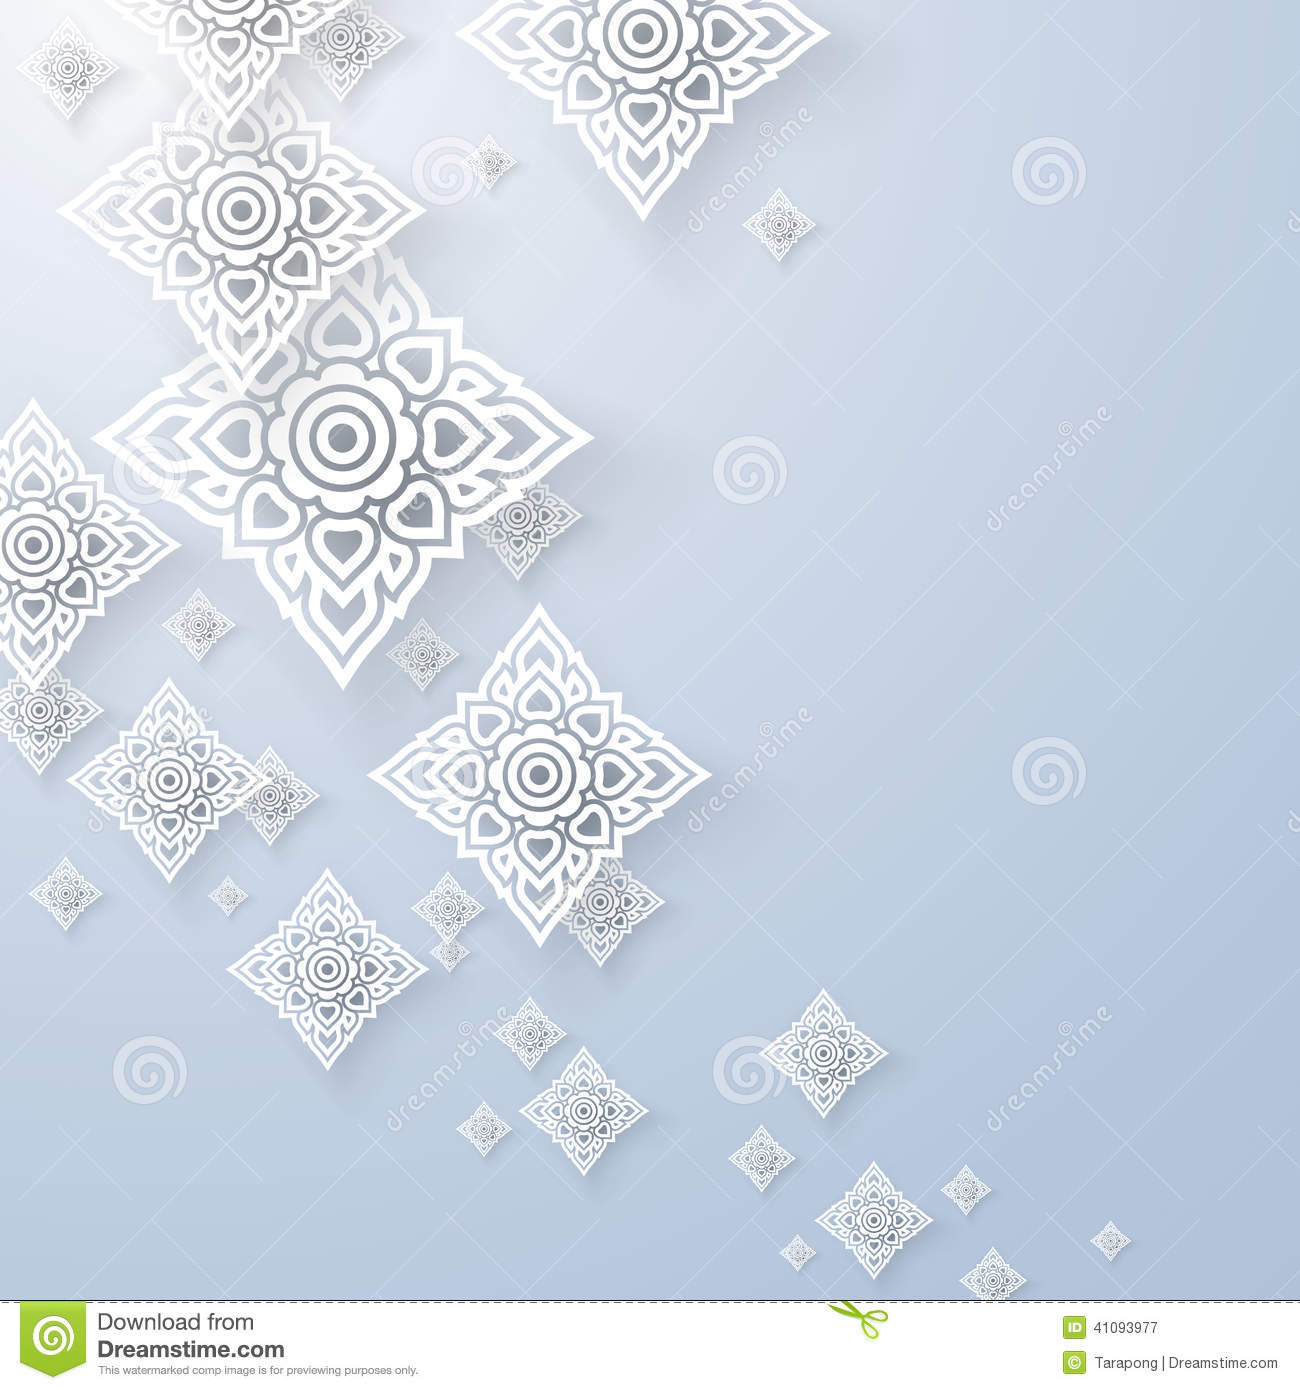 Asian art background thai art pattern vector stock Blueprint designer free